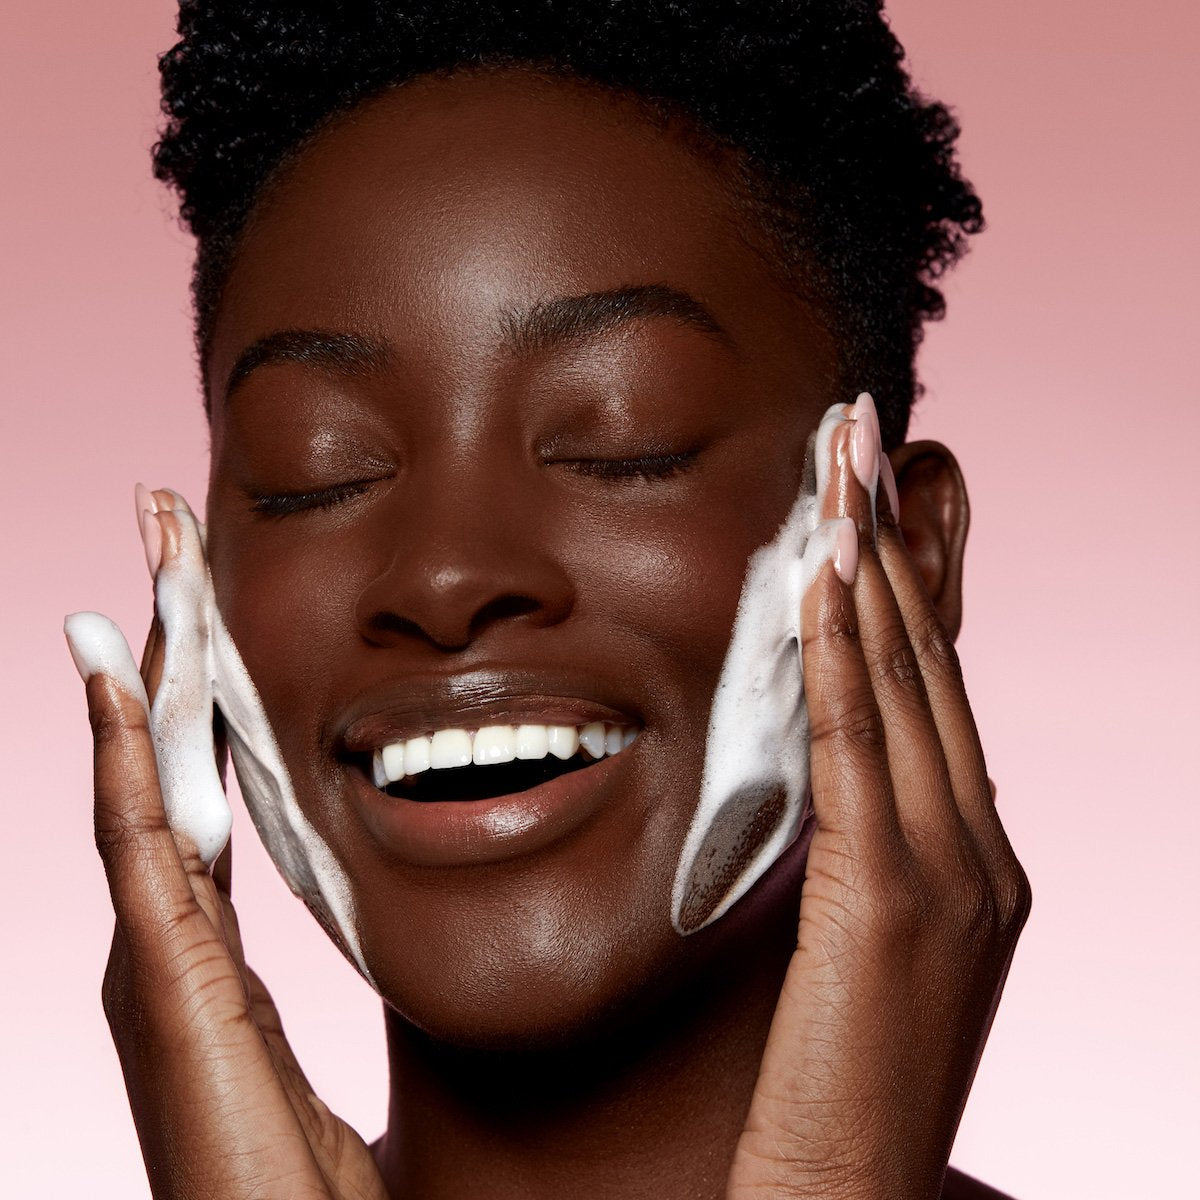 Model using Kylie Skin Foaming Face Wash by Kylie Jenner